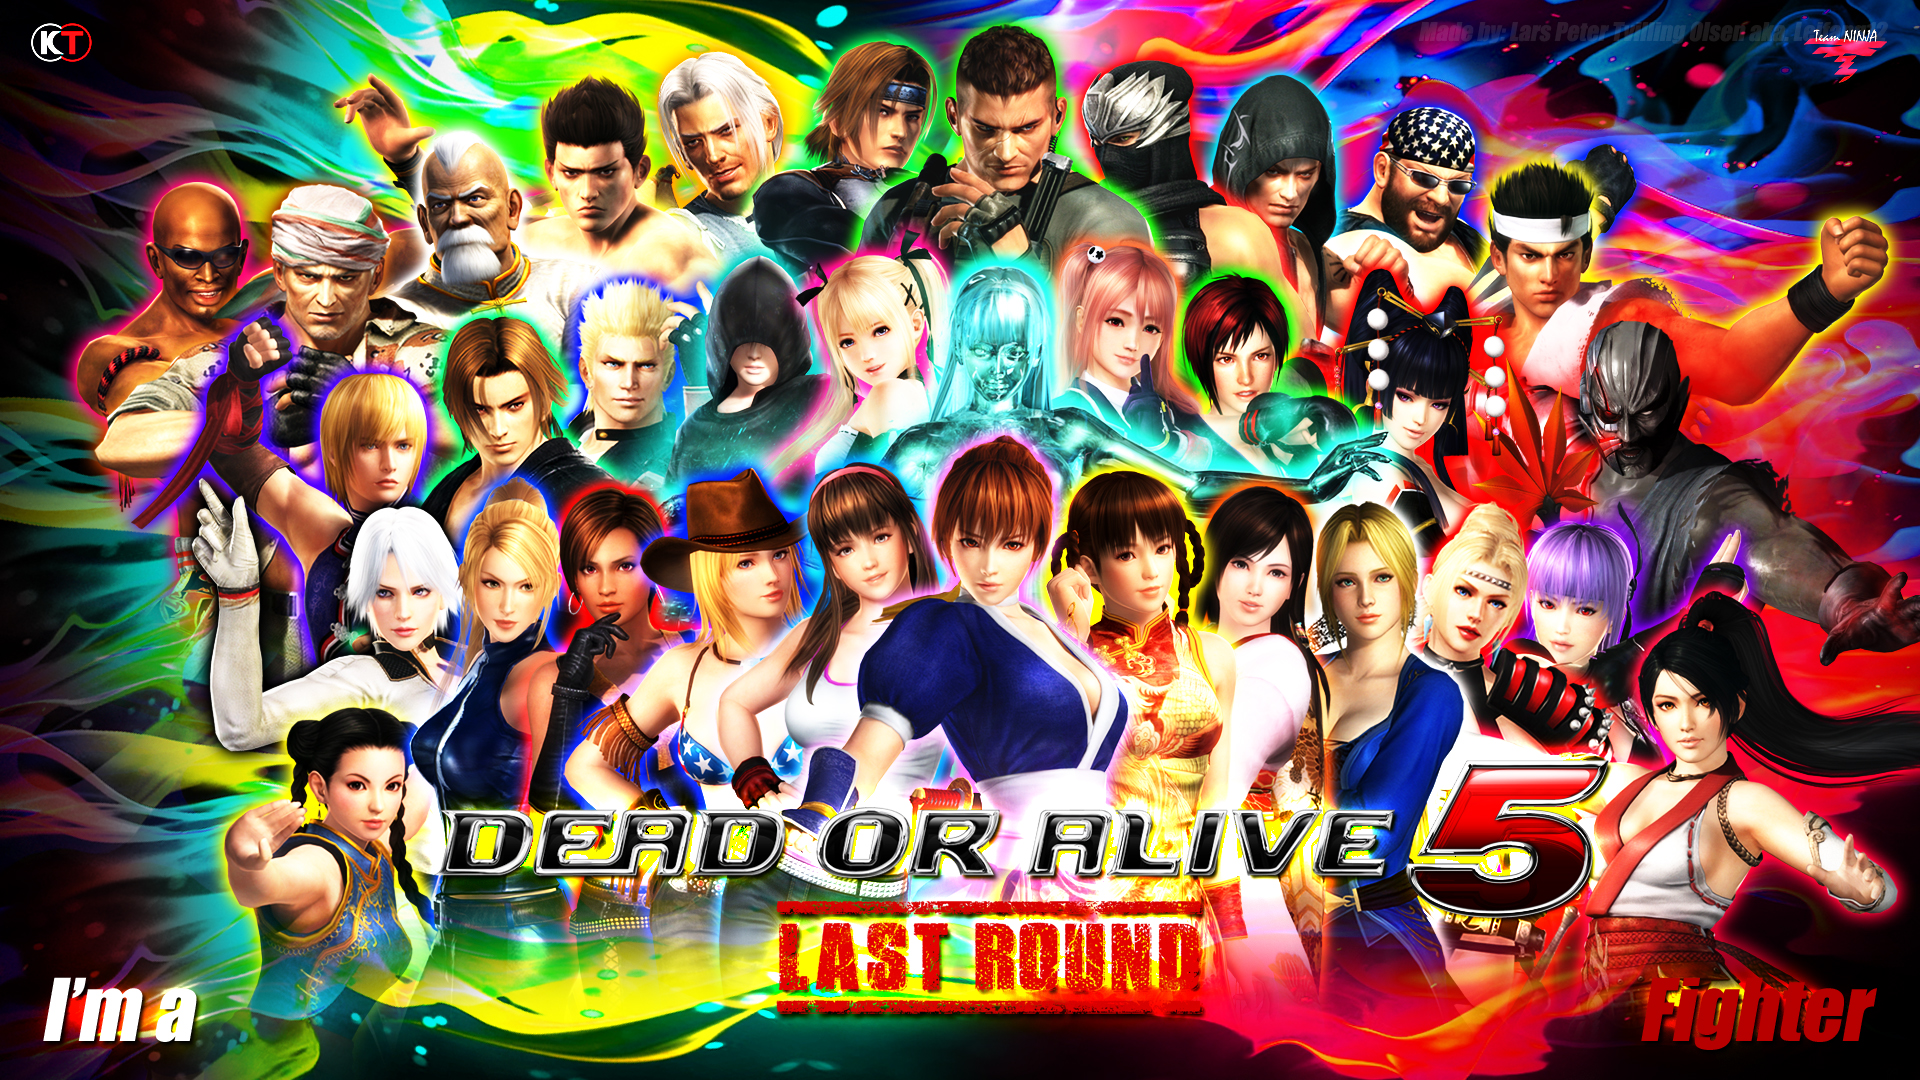 DEAD OR ALIVE 5   LAST ROUND   CHARACTER WALLPAPER by Leifang12 on 1920x1080